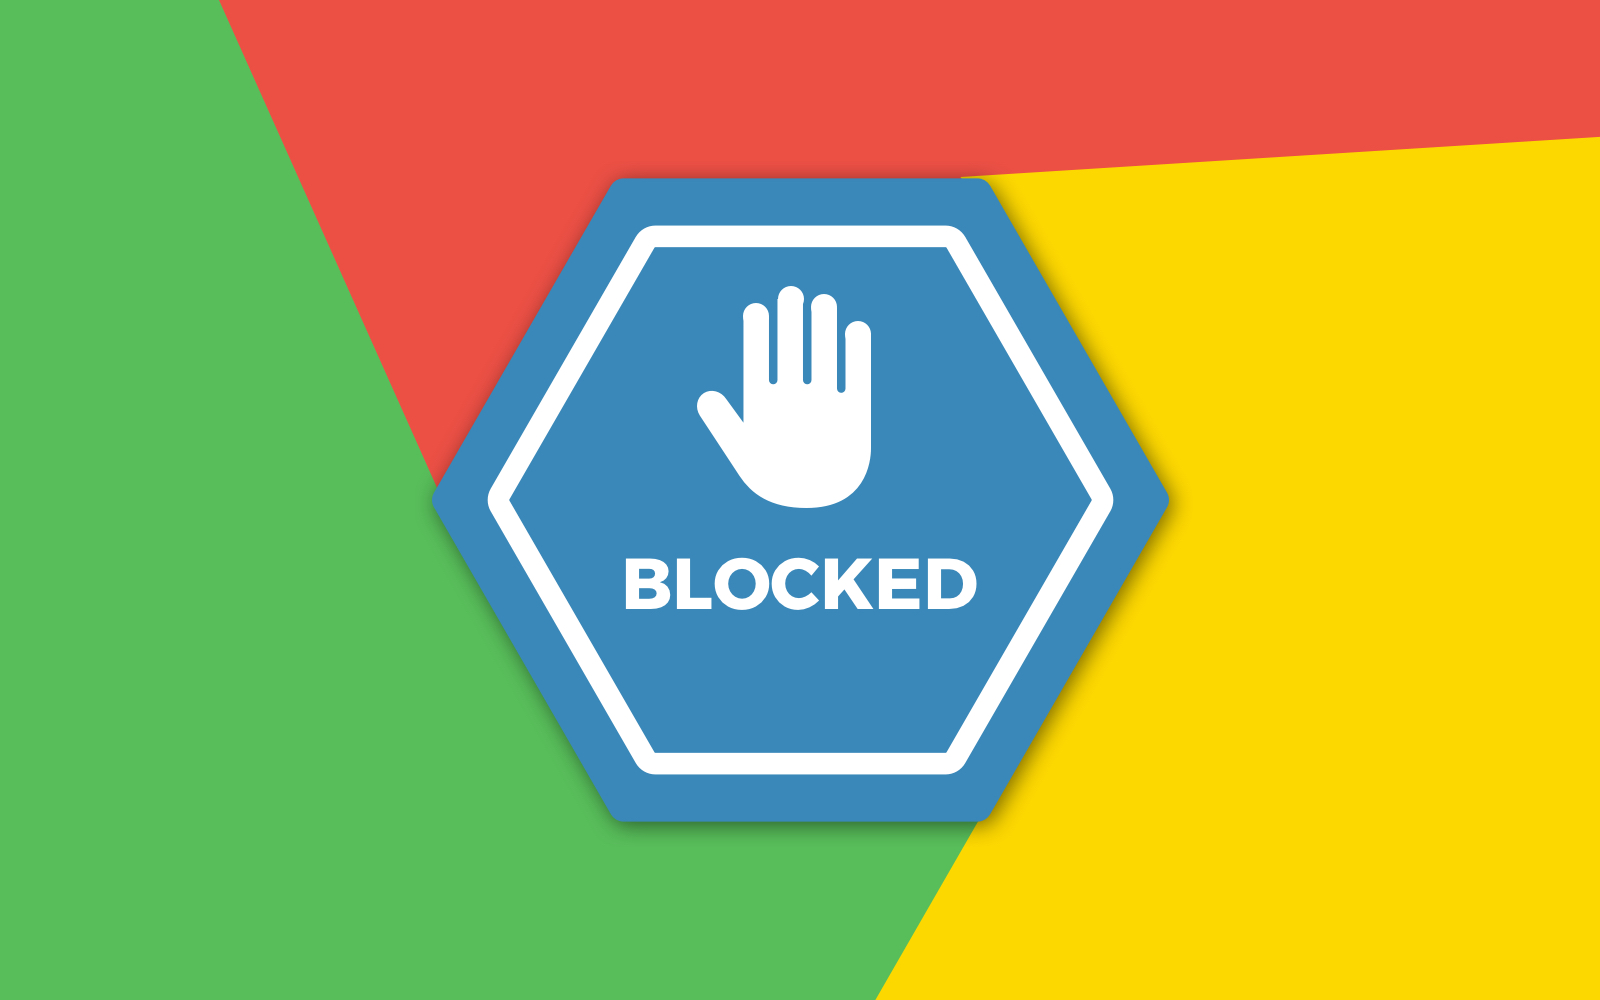 Chrome's default ad blocker strengthens Google's data-driven advertising platforms